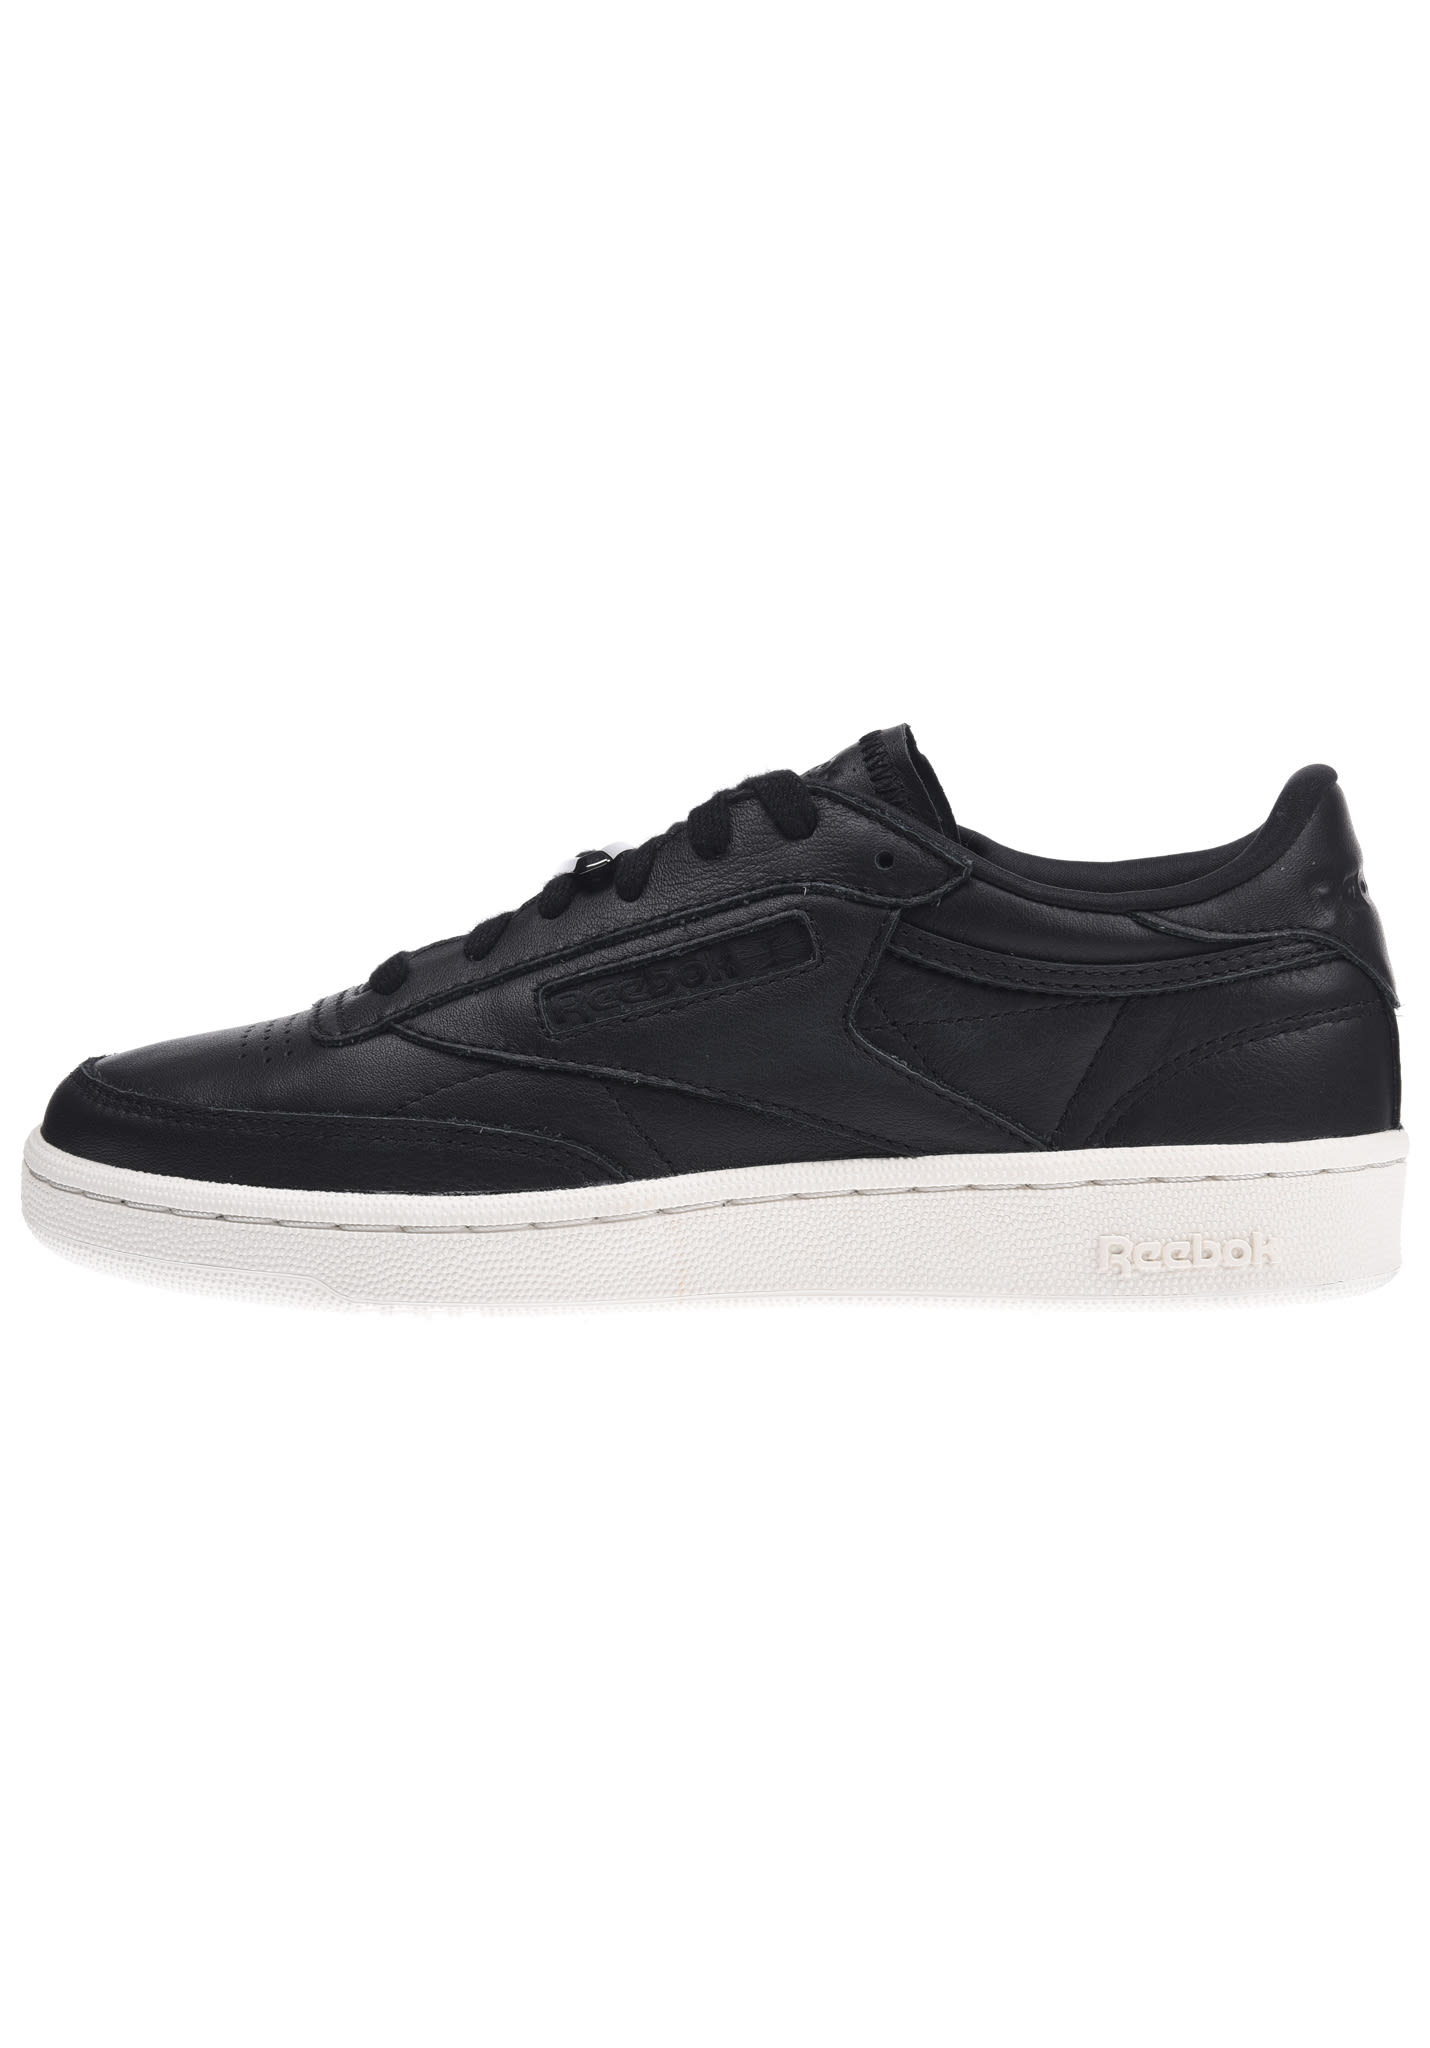 19fee670f0c42d Reebok Club C 85 Hardware - Sneakers for Women - Black - Planet Sports